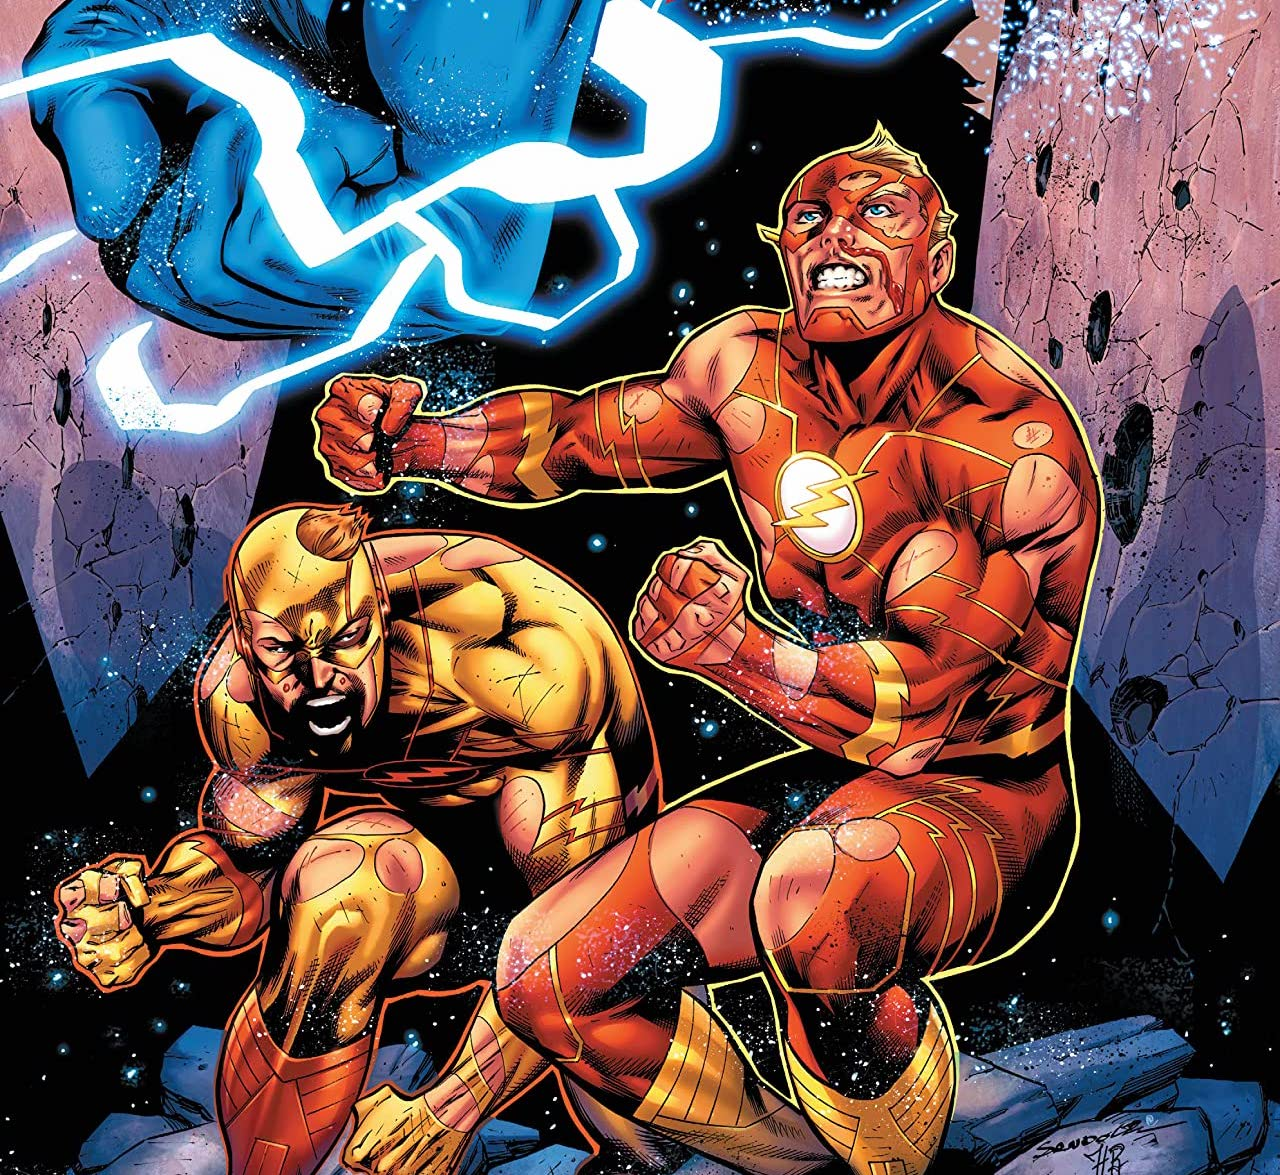 'The Flash' #755 review: Perfectly calibrated for dedicated readers